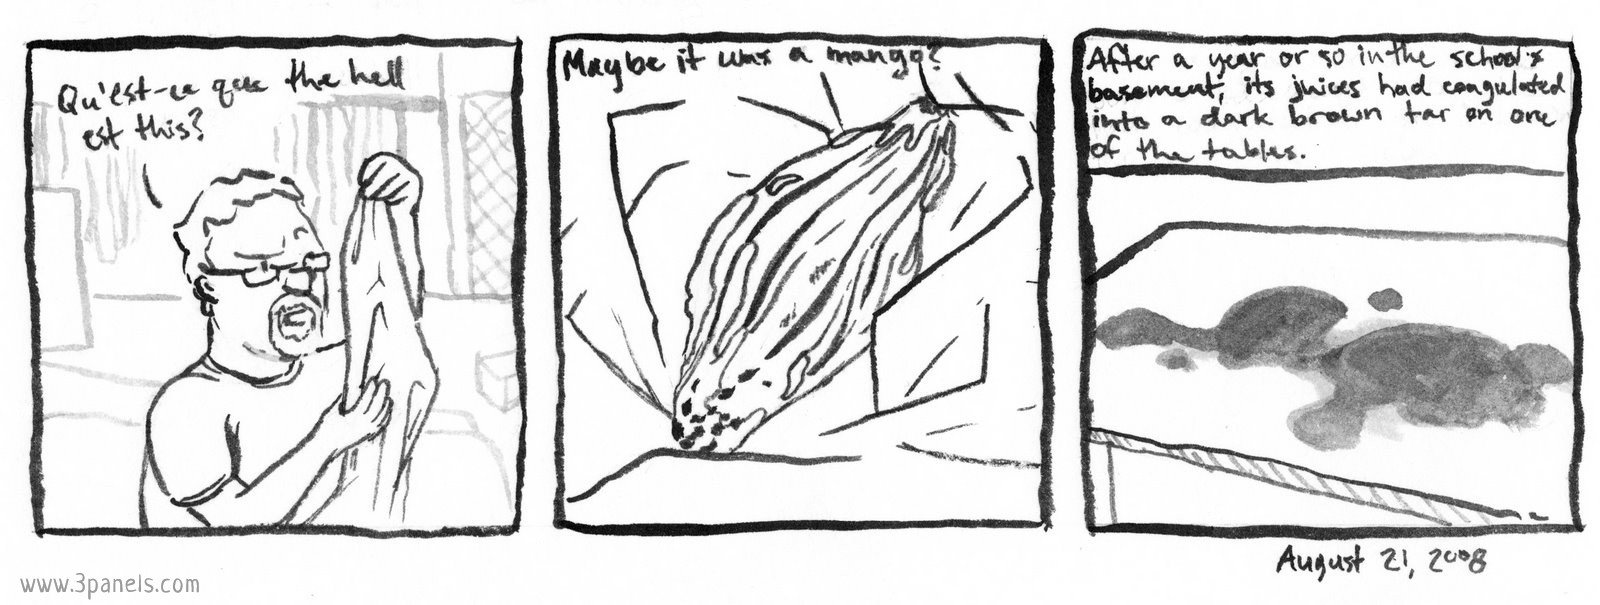 """Dean and their dad are cleaning in the basement of Dean's old school. Panel 1: Dean's dad holds a plastic bag in front of his face and says: """"Qu'est-ce que the hell est this?"""" Panel 2: Close up image of the plastic bag's contents. A dried-out, moldy piece of fruit. Image text reads: """"Maybe it was a mango?"""" Panel 3: Image of a table with a large stain on it. Image text reads: """"After a year or so in the school's basement, its juices had coagulated into a dark brown tar on one of the tables."""""""